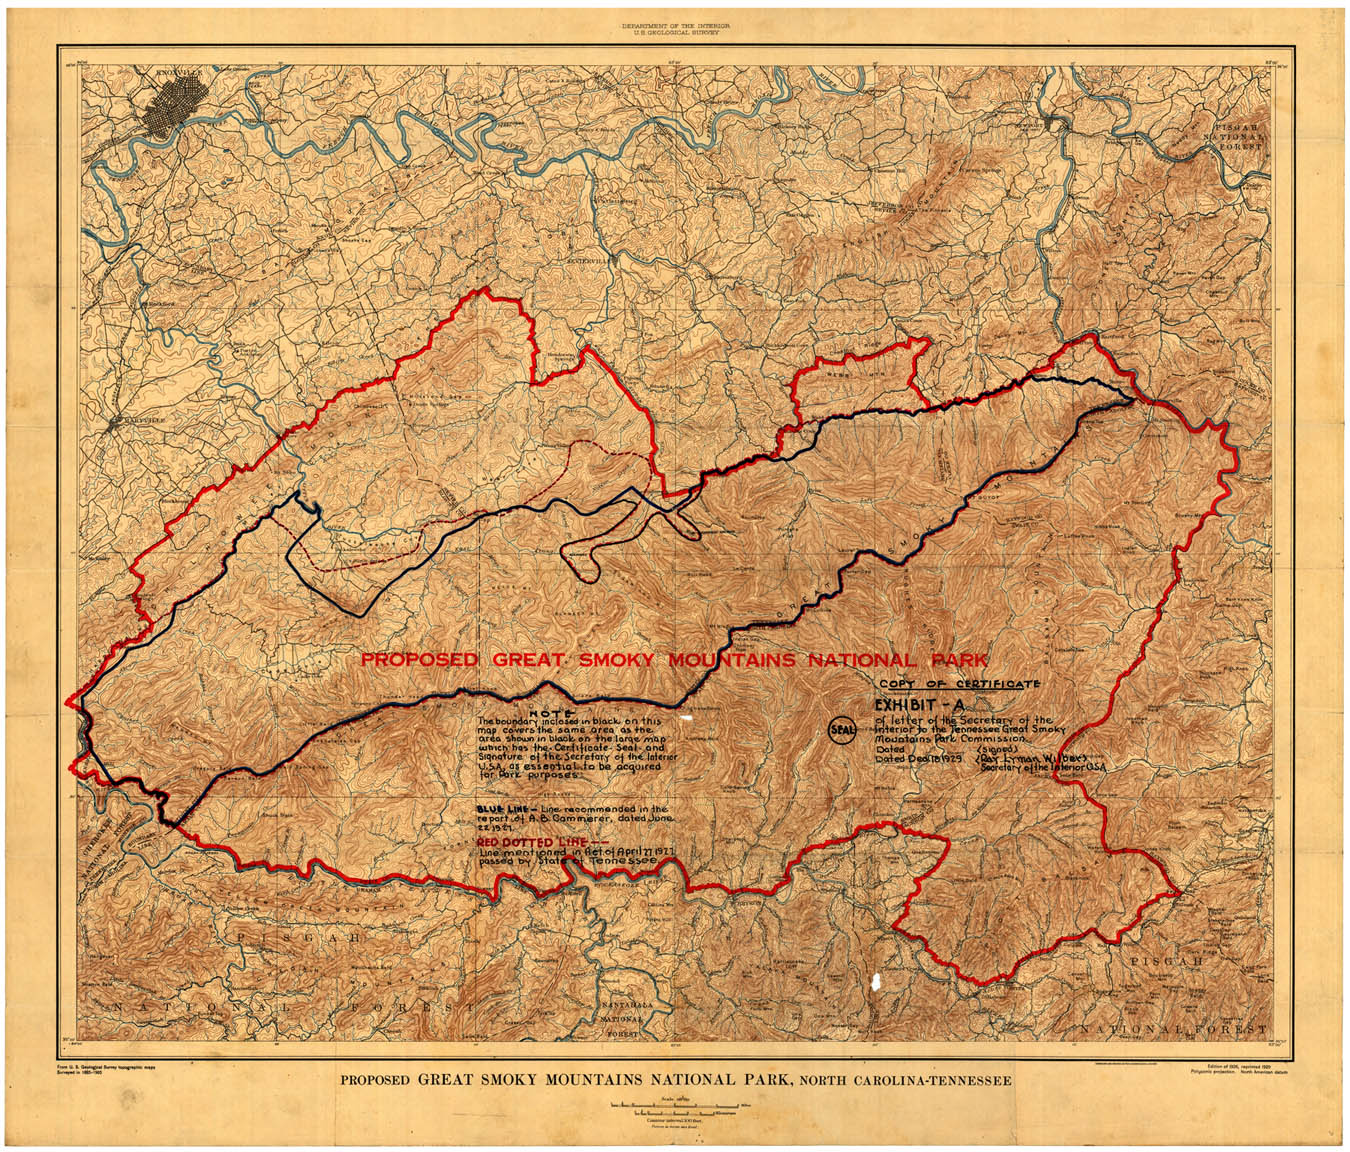 Tennessee Outdoors on smoky mtn map, smoky mountains gatlinburg tn, smoky mountains location on map, great smoky mountains on a map, great smoky mts map, smoky mountains directions, appalachian mountains map, great smoky mountains np map, cades cove smoky mountains map, the smoky mountains map, rocky mountain park map, smoky mountains north carolina map, smoky mountains address, great smoky mountains topographic map, smoky mountains tennessee, garden of the gods park map, boulder mountain park map, white mountain park map, red mountain park map, fire mountain park map,